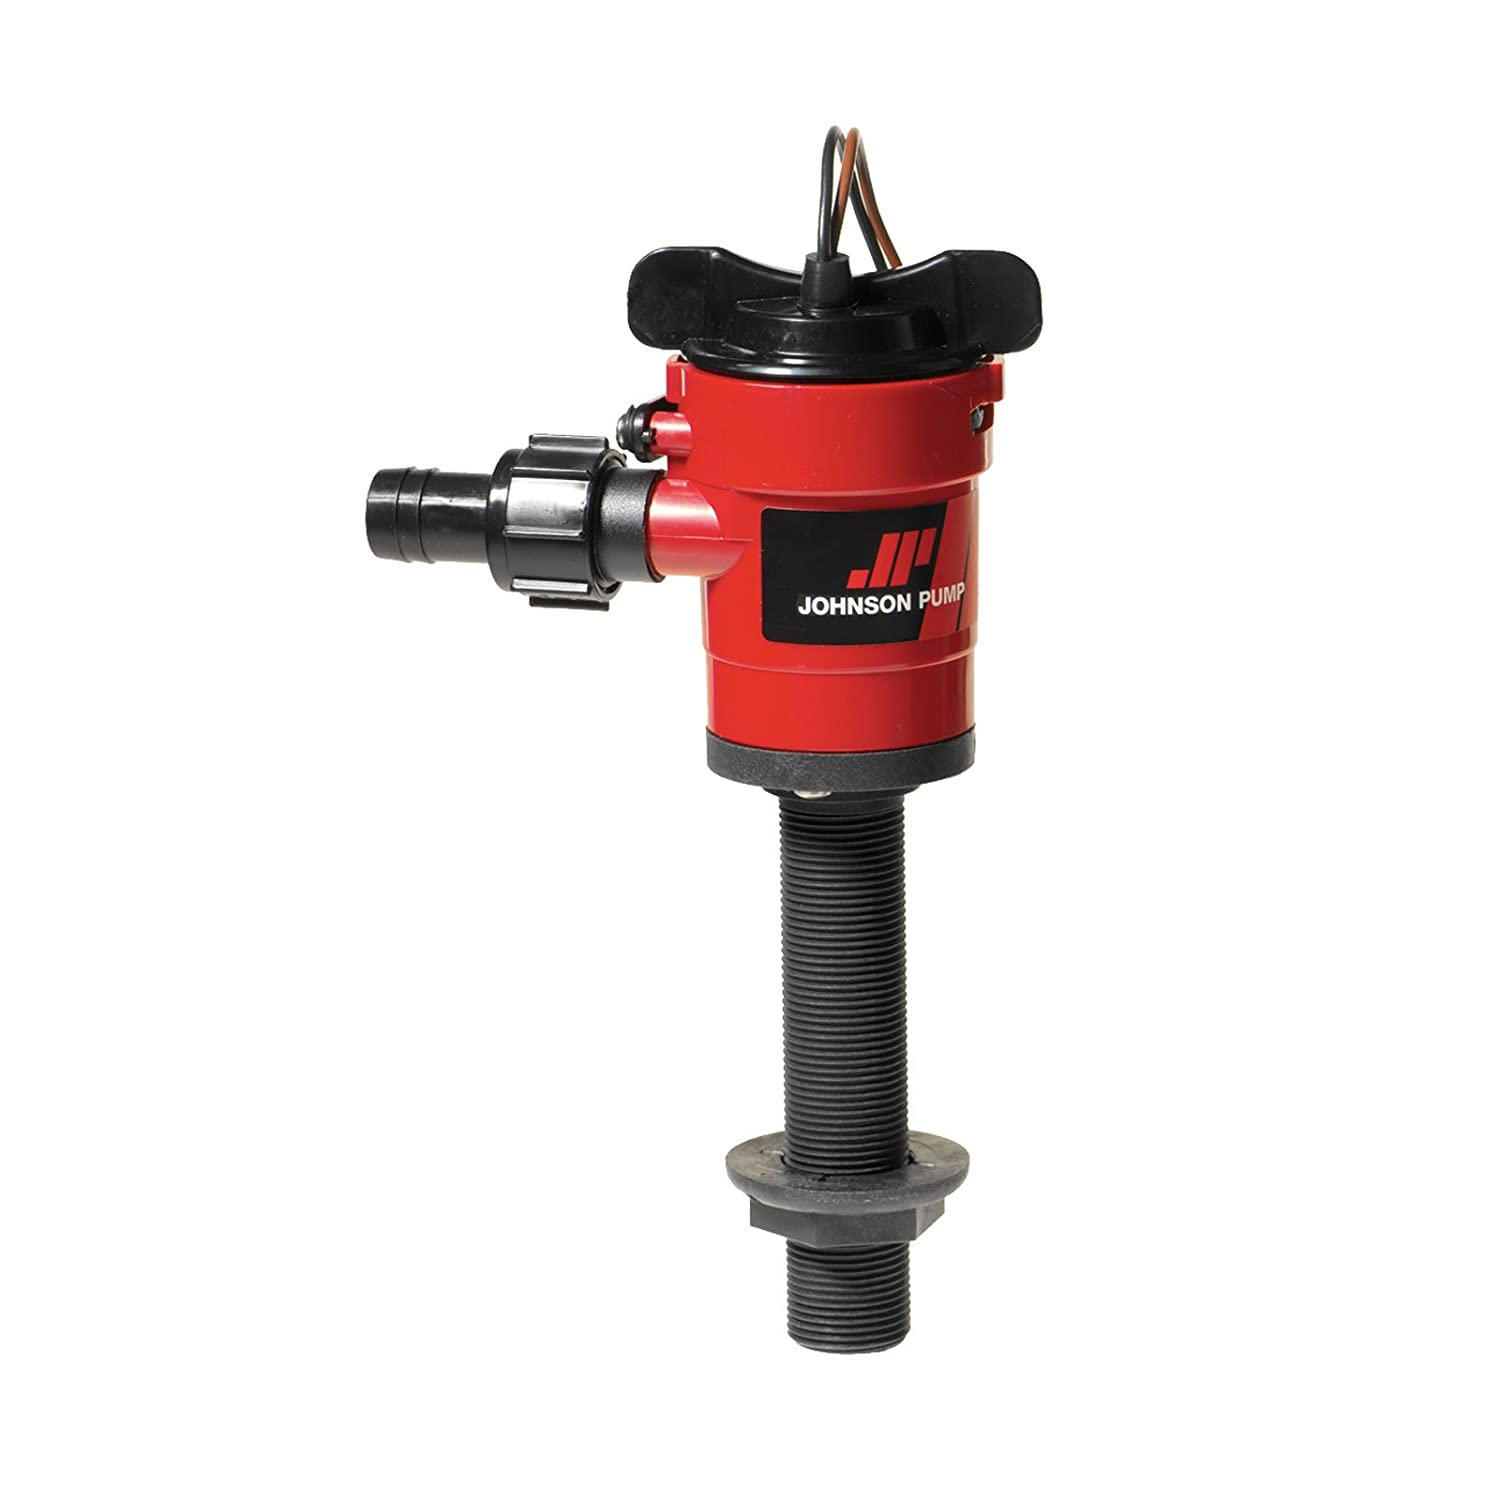 Johnson Pump Aerator Pump MAYFAIR